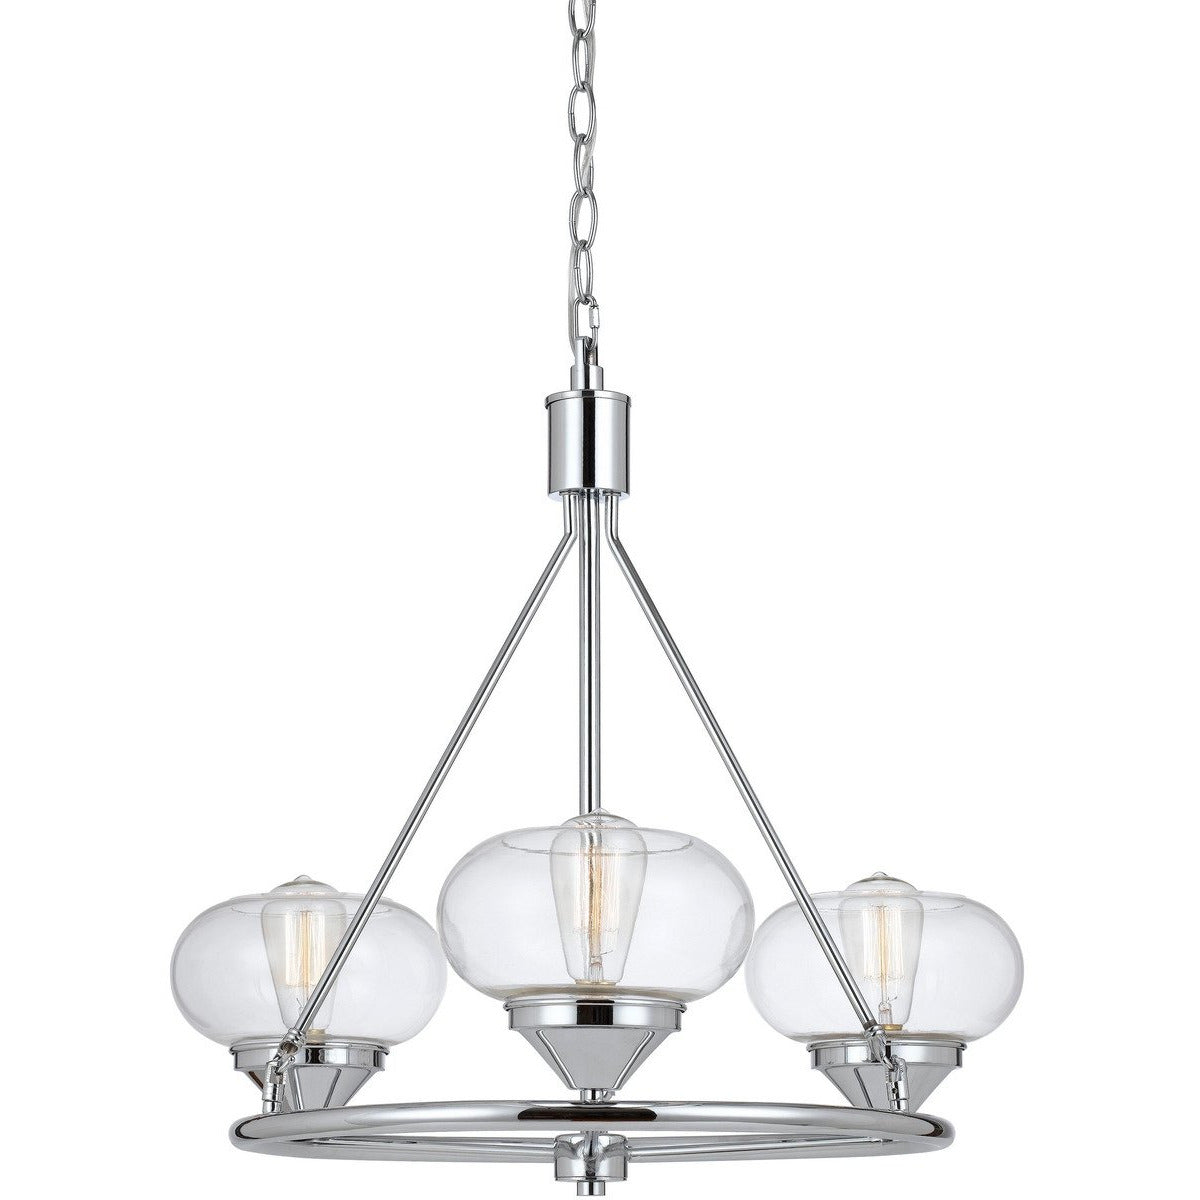 Chandeliers & Pendants - 60 X 3 Watt Metal And Glass Chandelier With 6 Foot Chain, Chrome